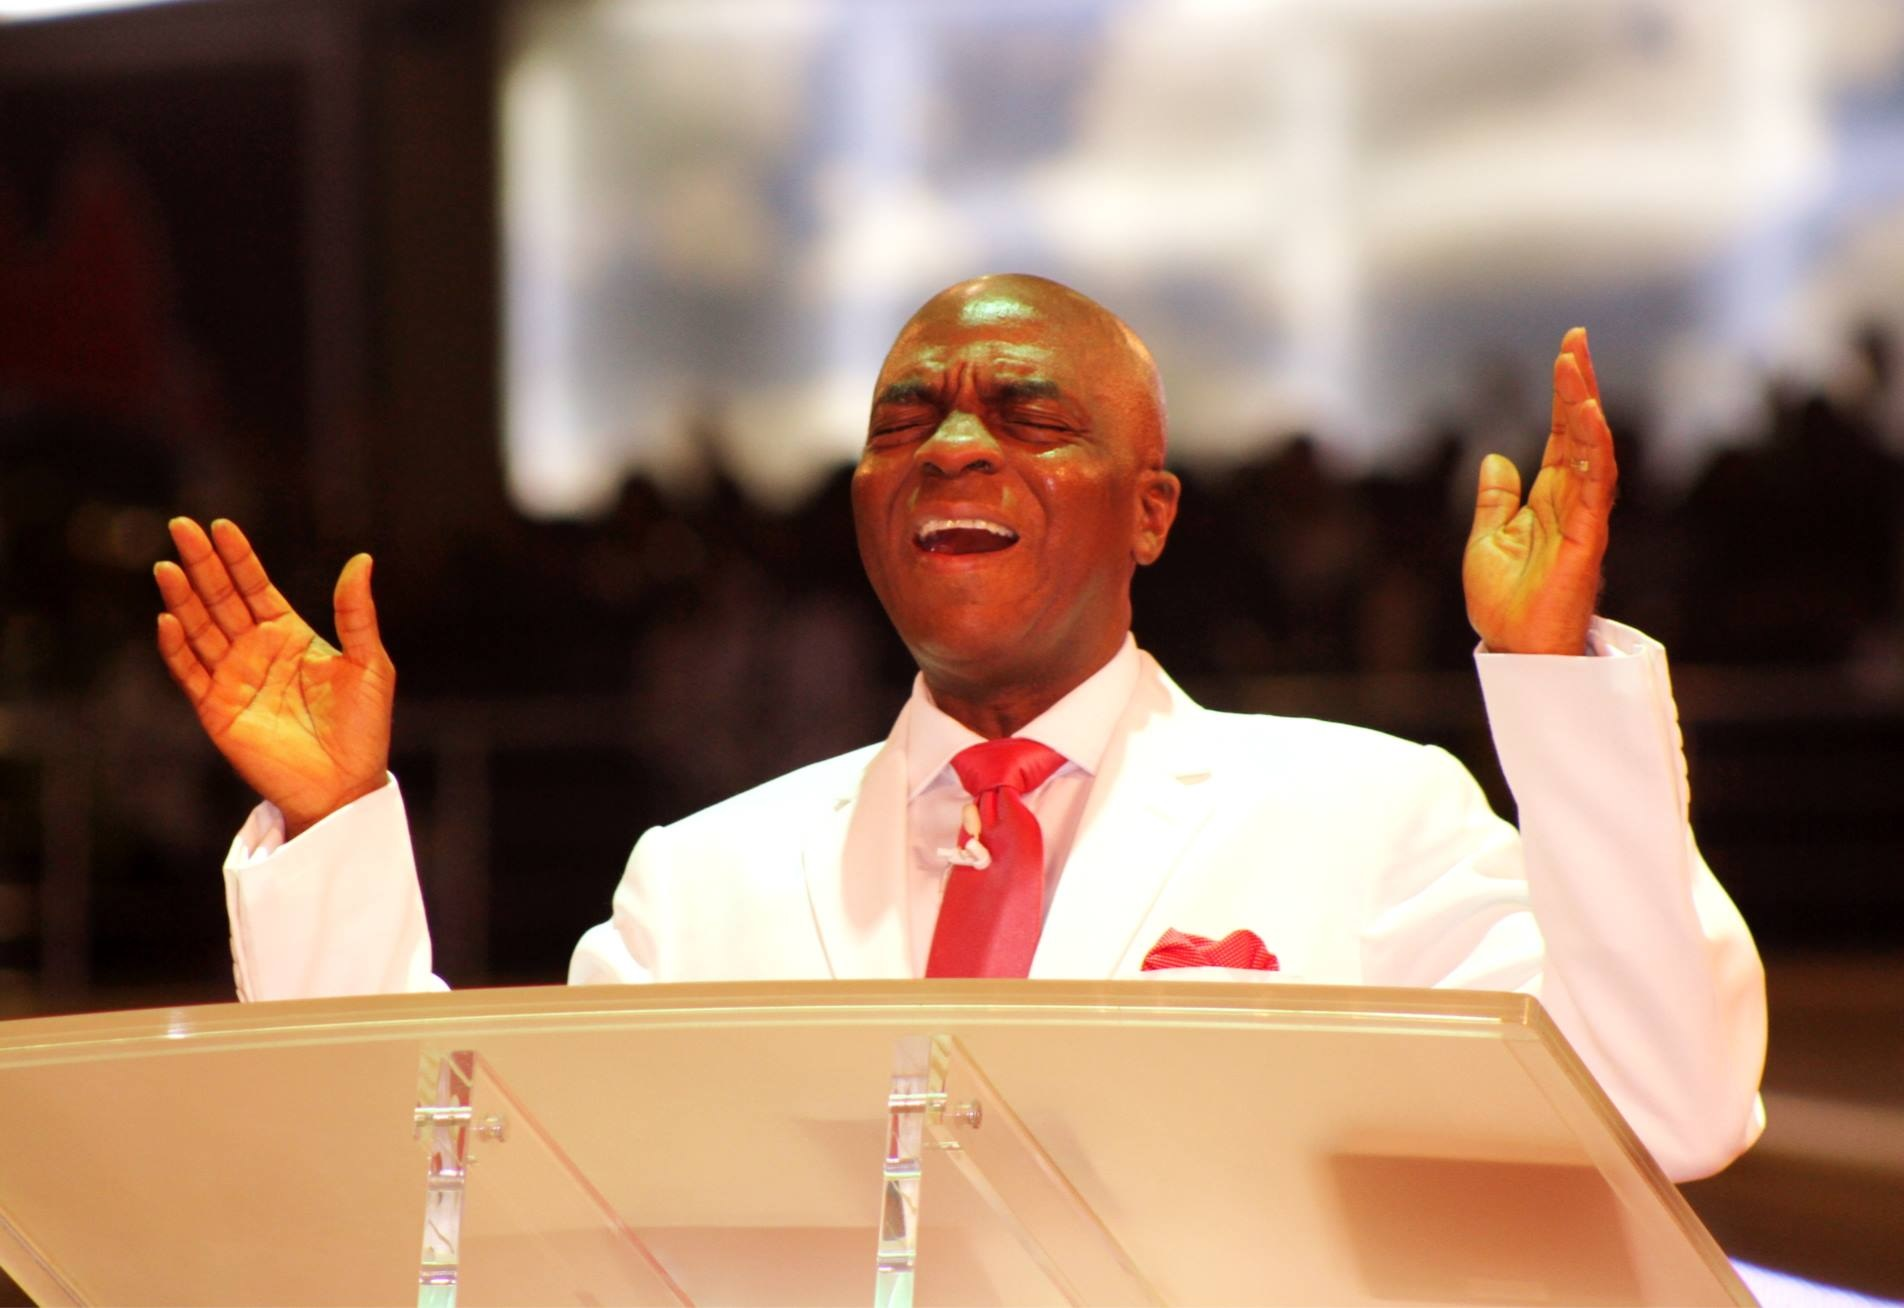 Bishop David Oyedepo spitting prophetic fires